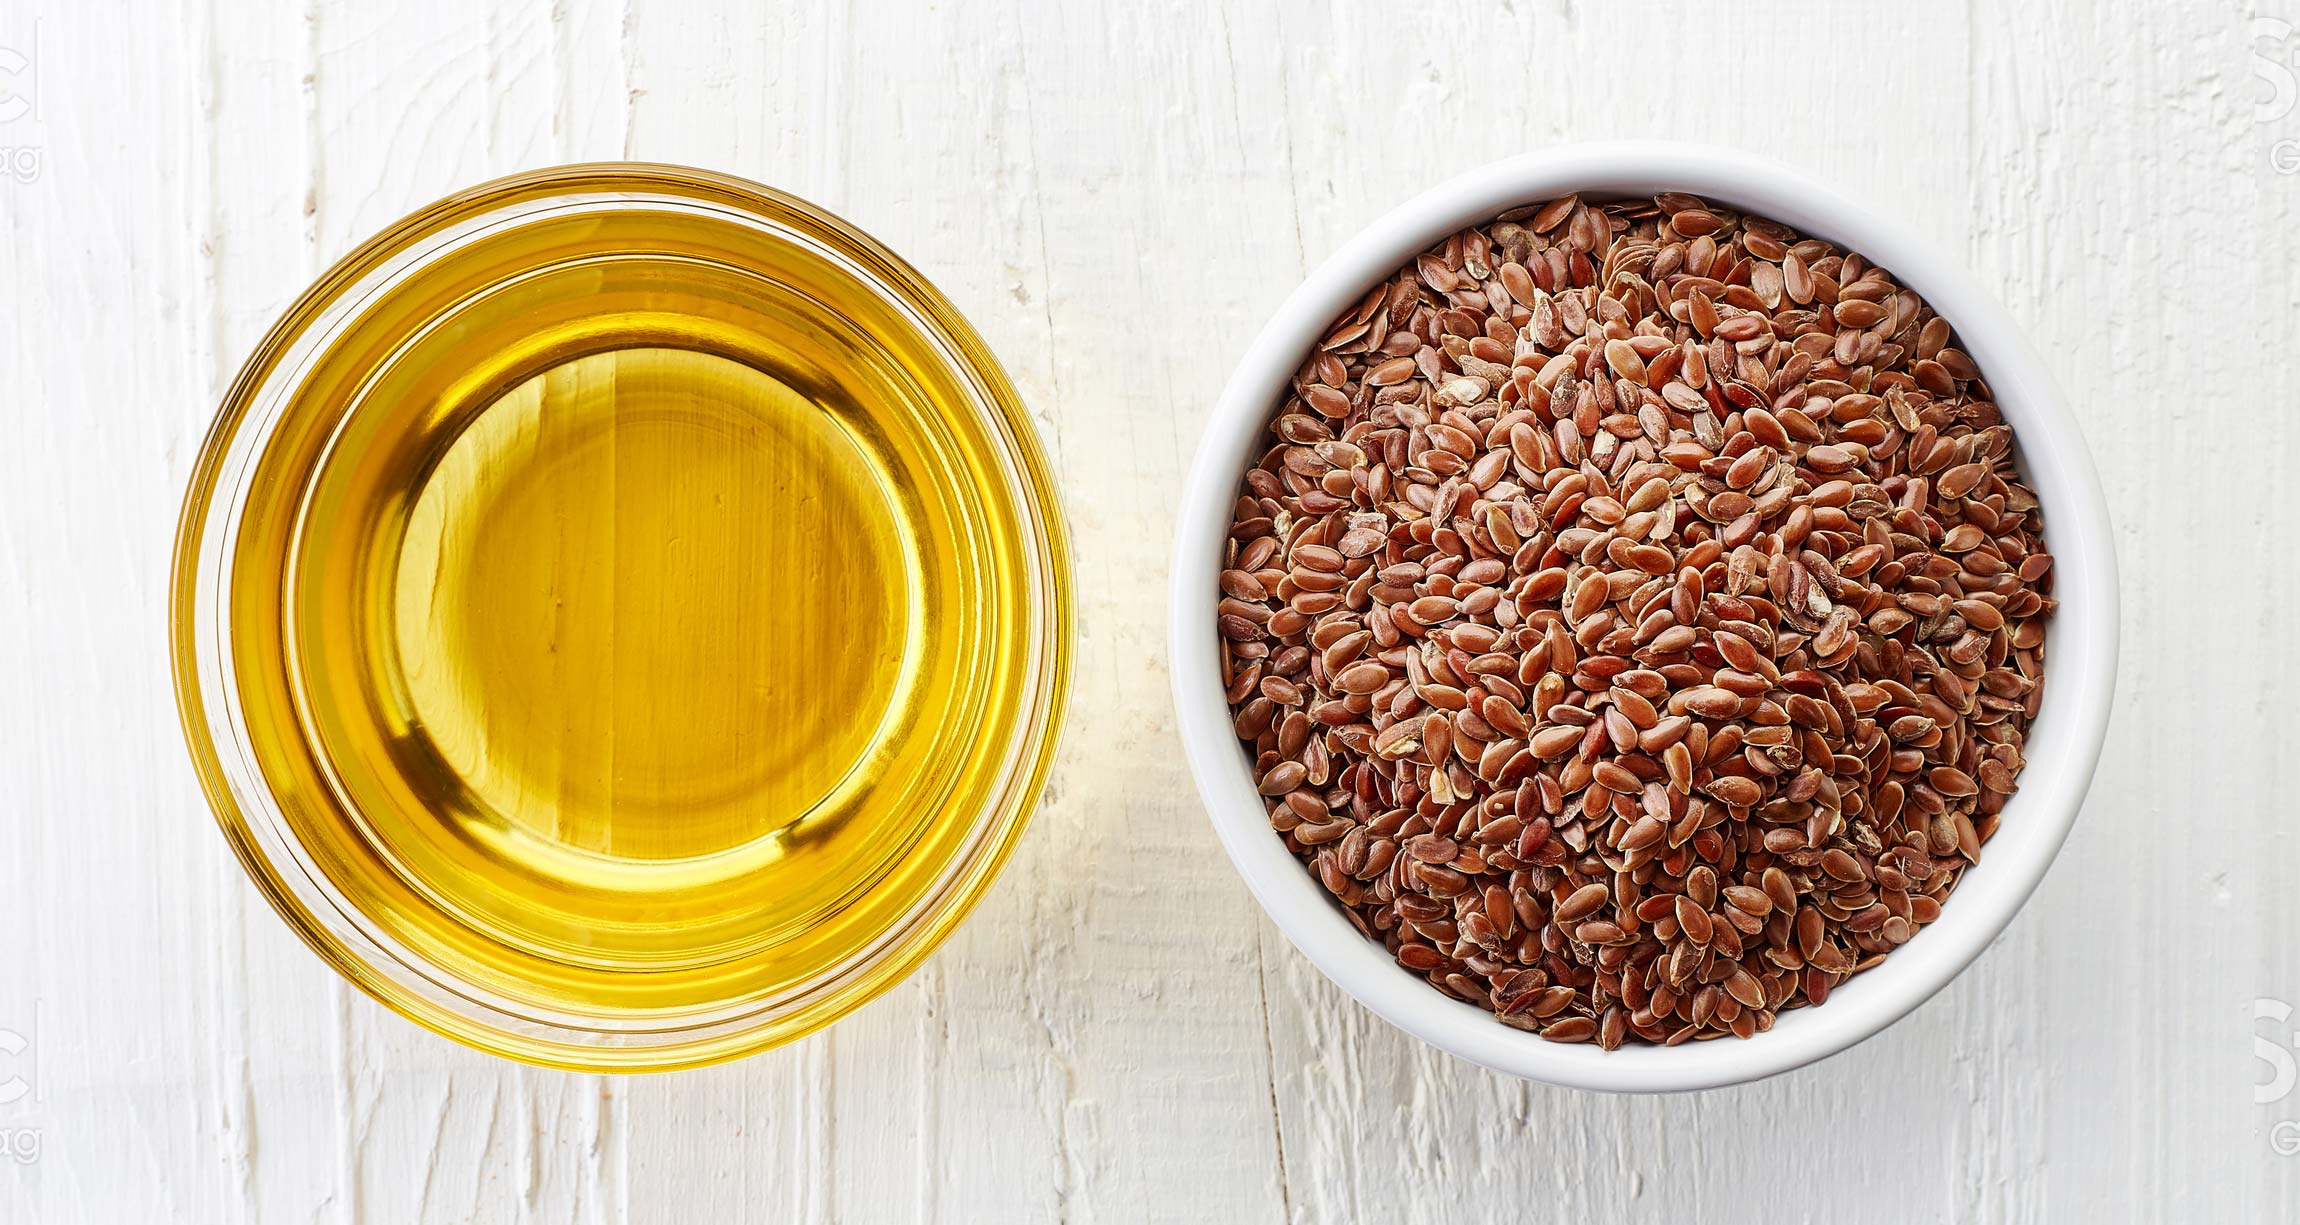 What is useful for flaxseed oil